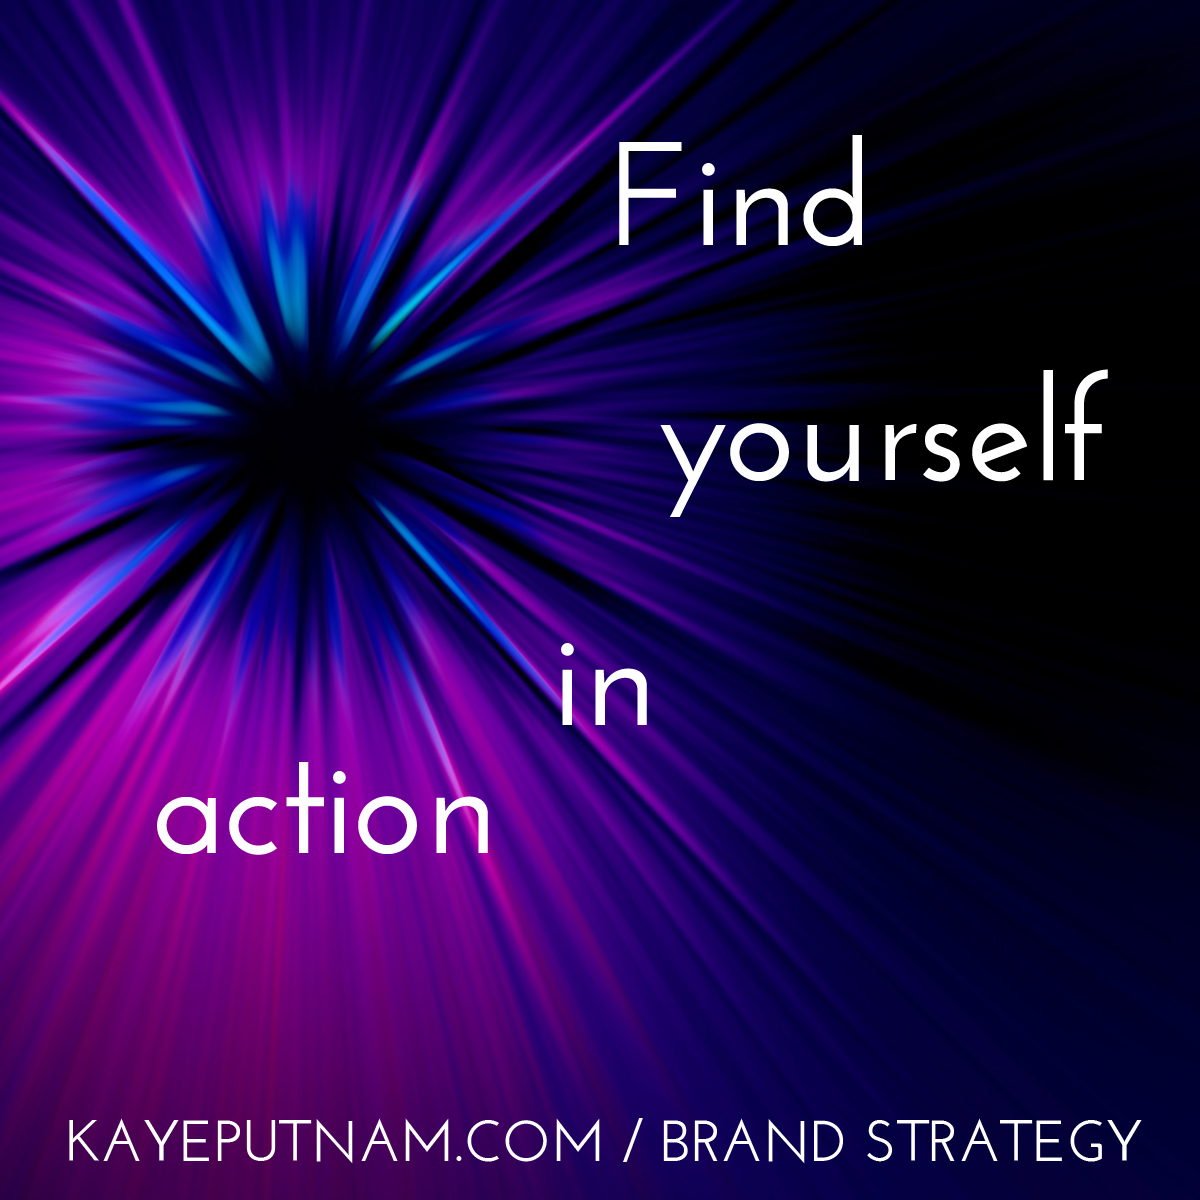 Find yourself in action. #InDemandBrand